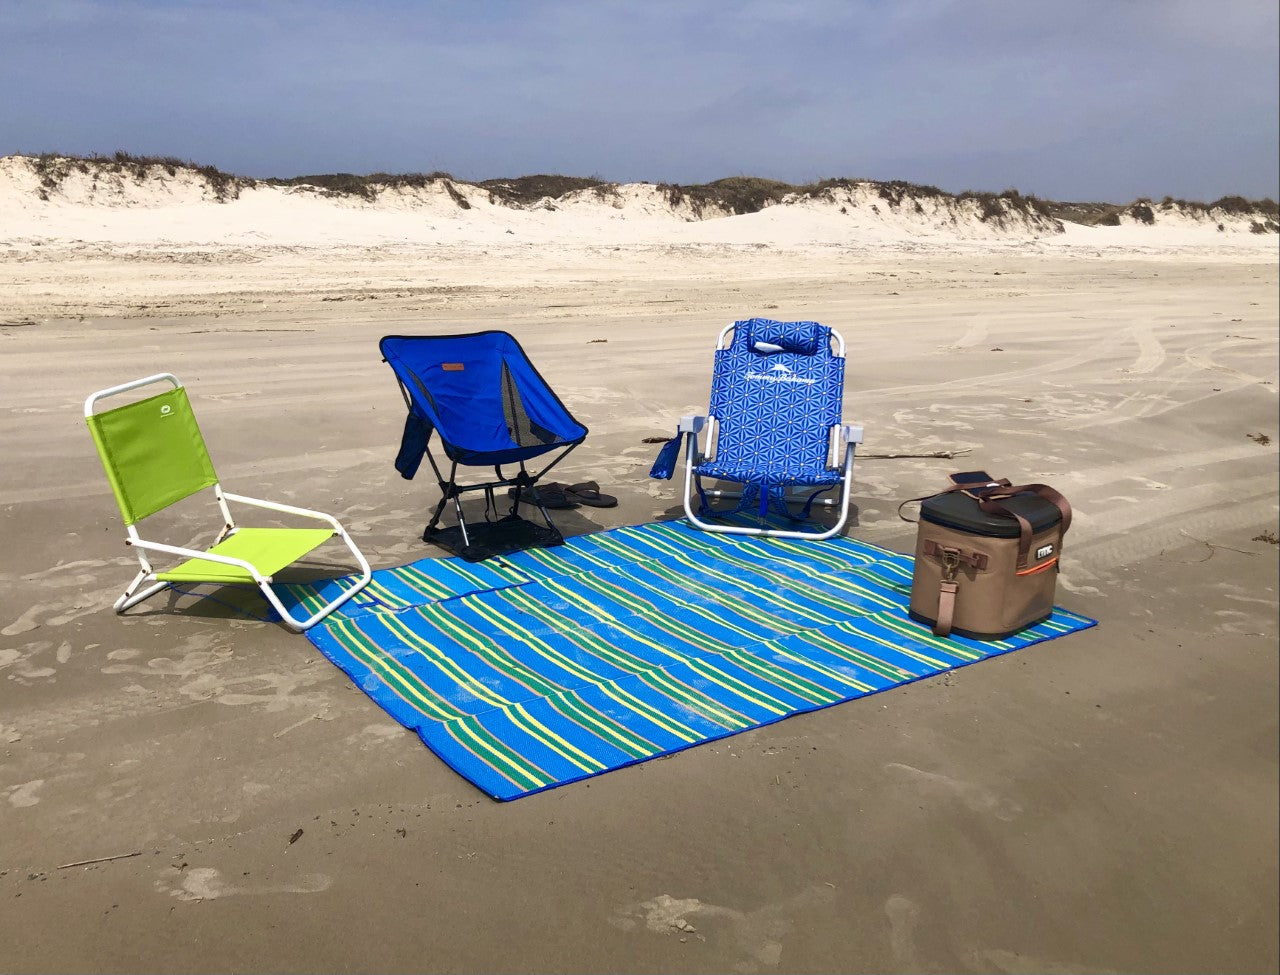 backpacking beach chairs on beach